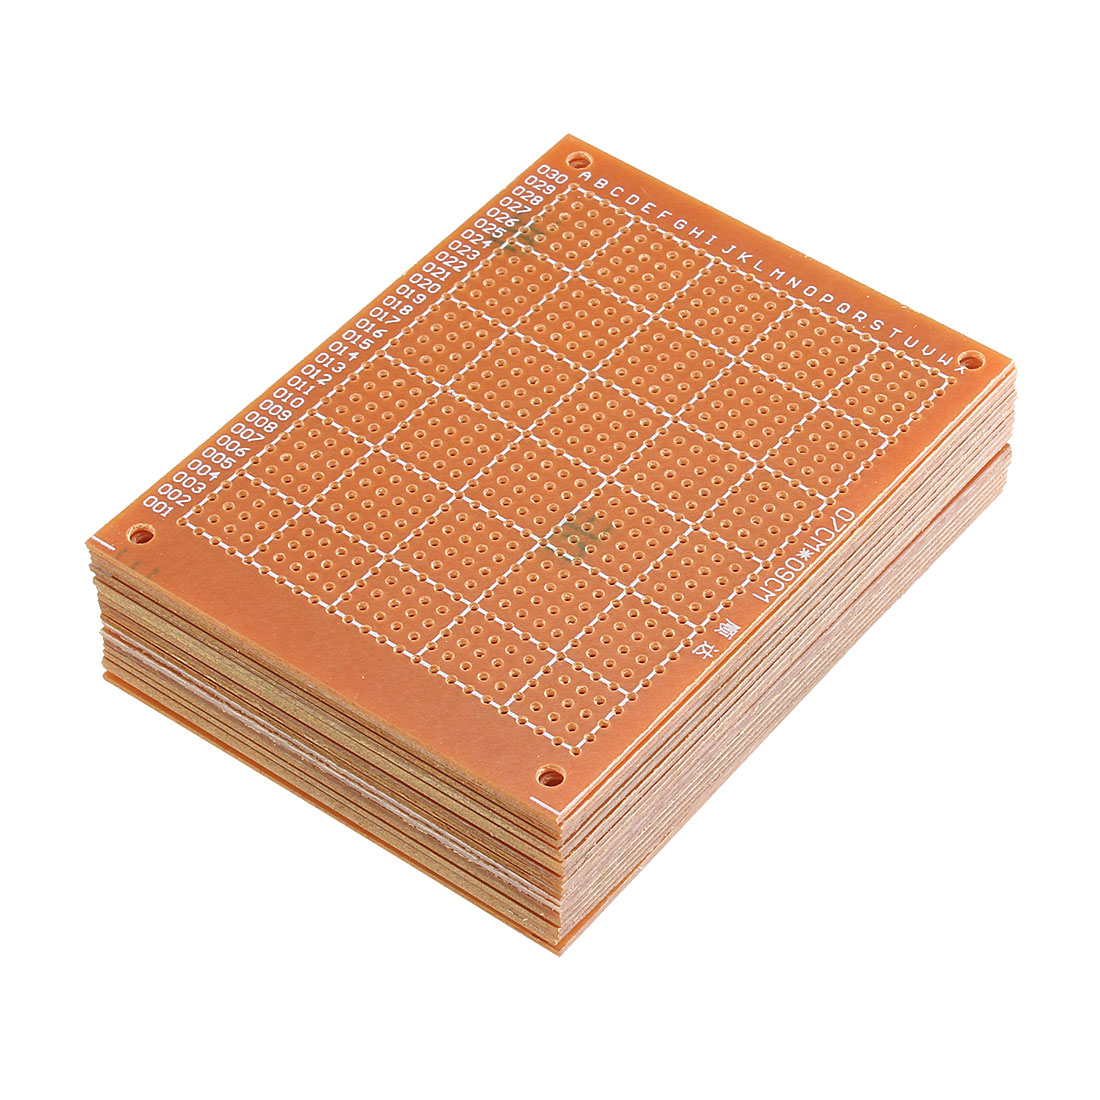 20Pcs Bakelite Single Side Copper Prototype PCB Matrix Board 9cmx7cm